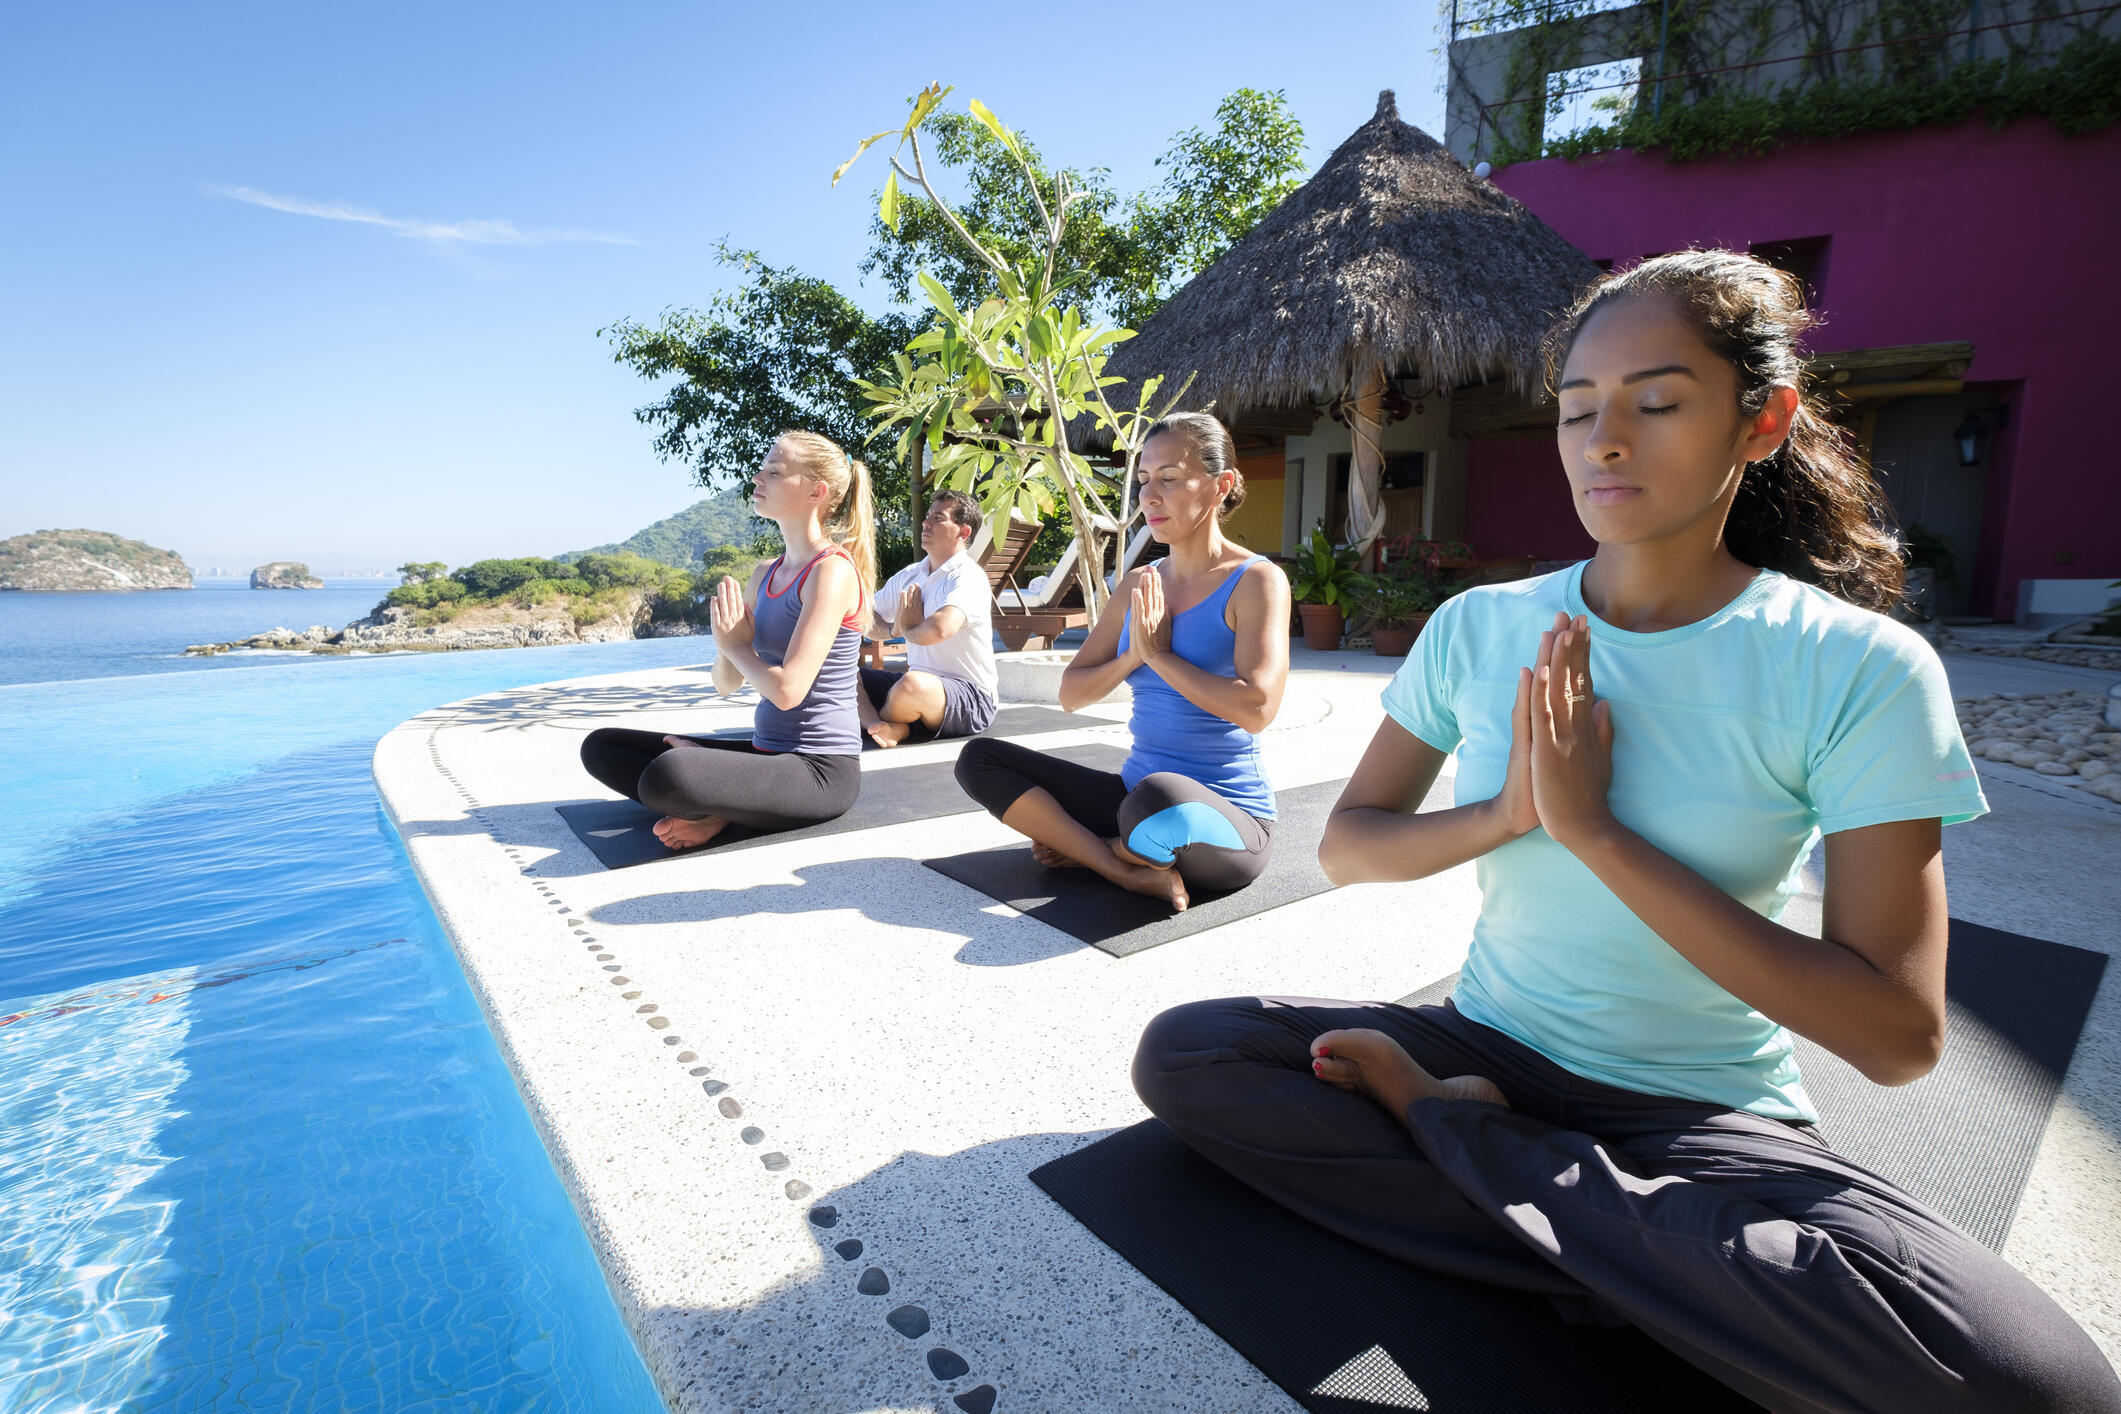 Meditation And Yoga Retreats Why You Should Take A Wellness Vacation Cnet Participants can bond over complimentary. meditation and yoga retreats why you